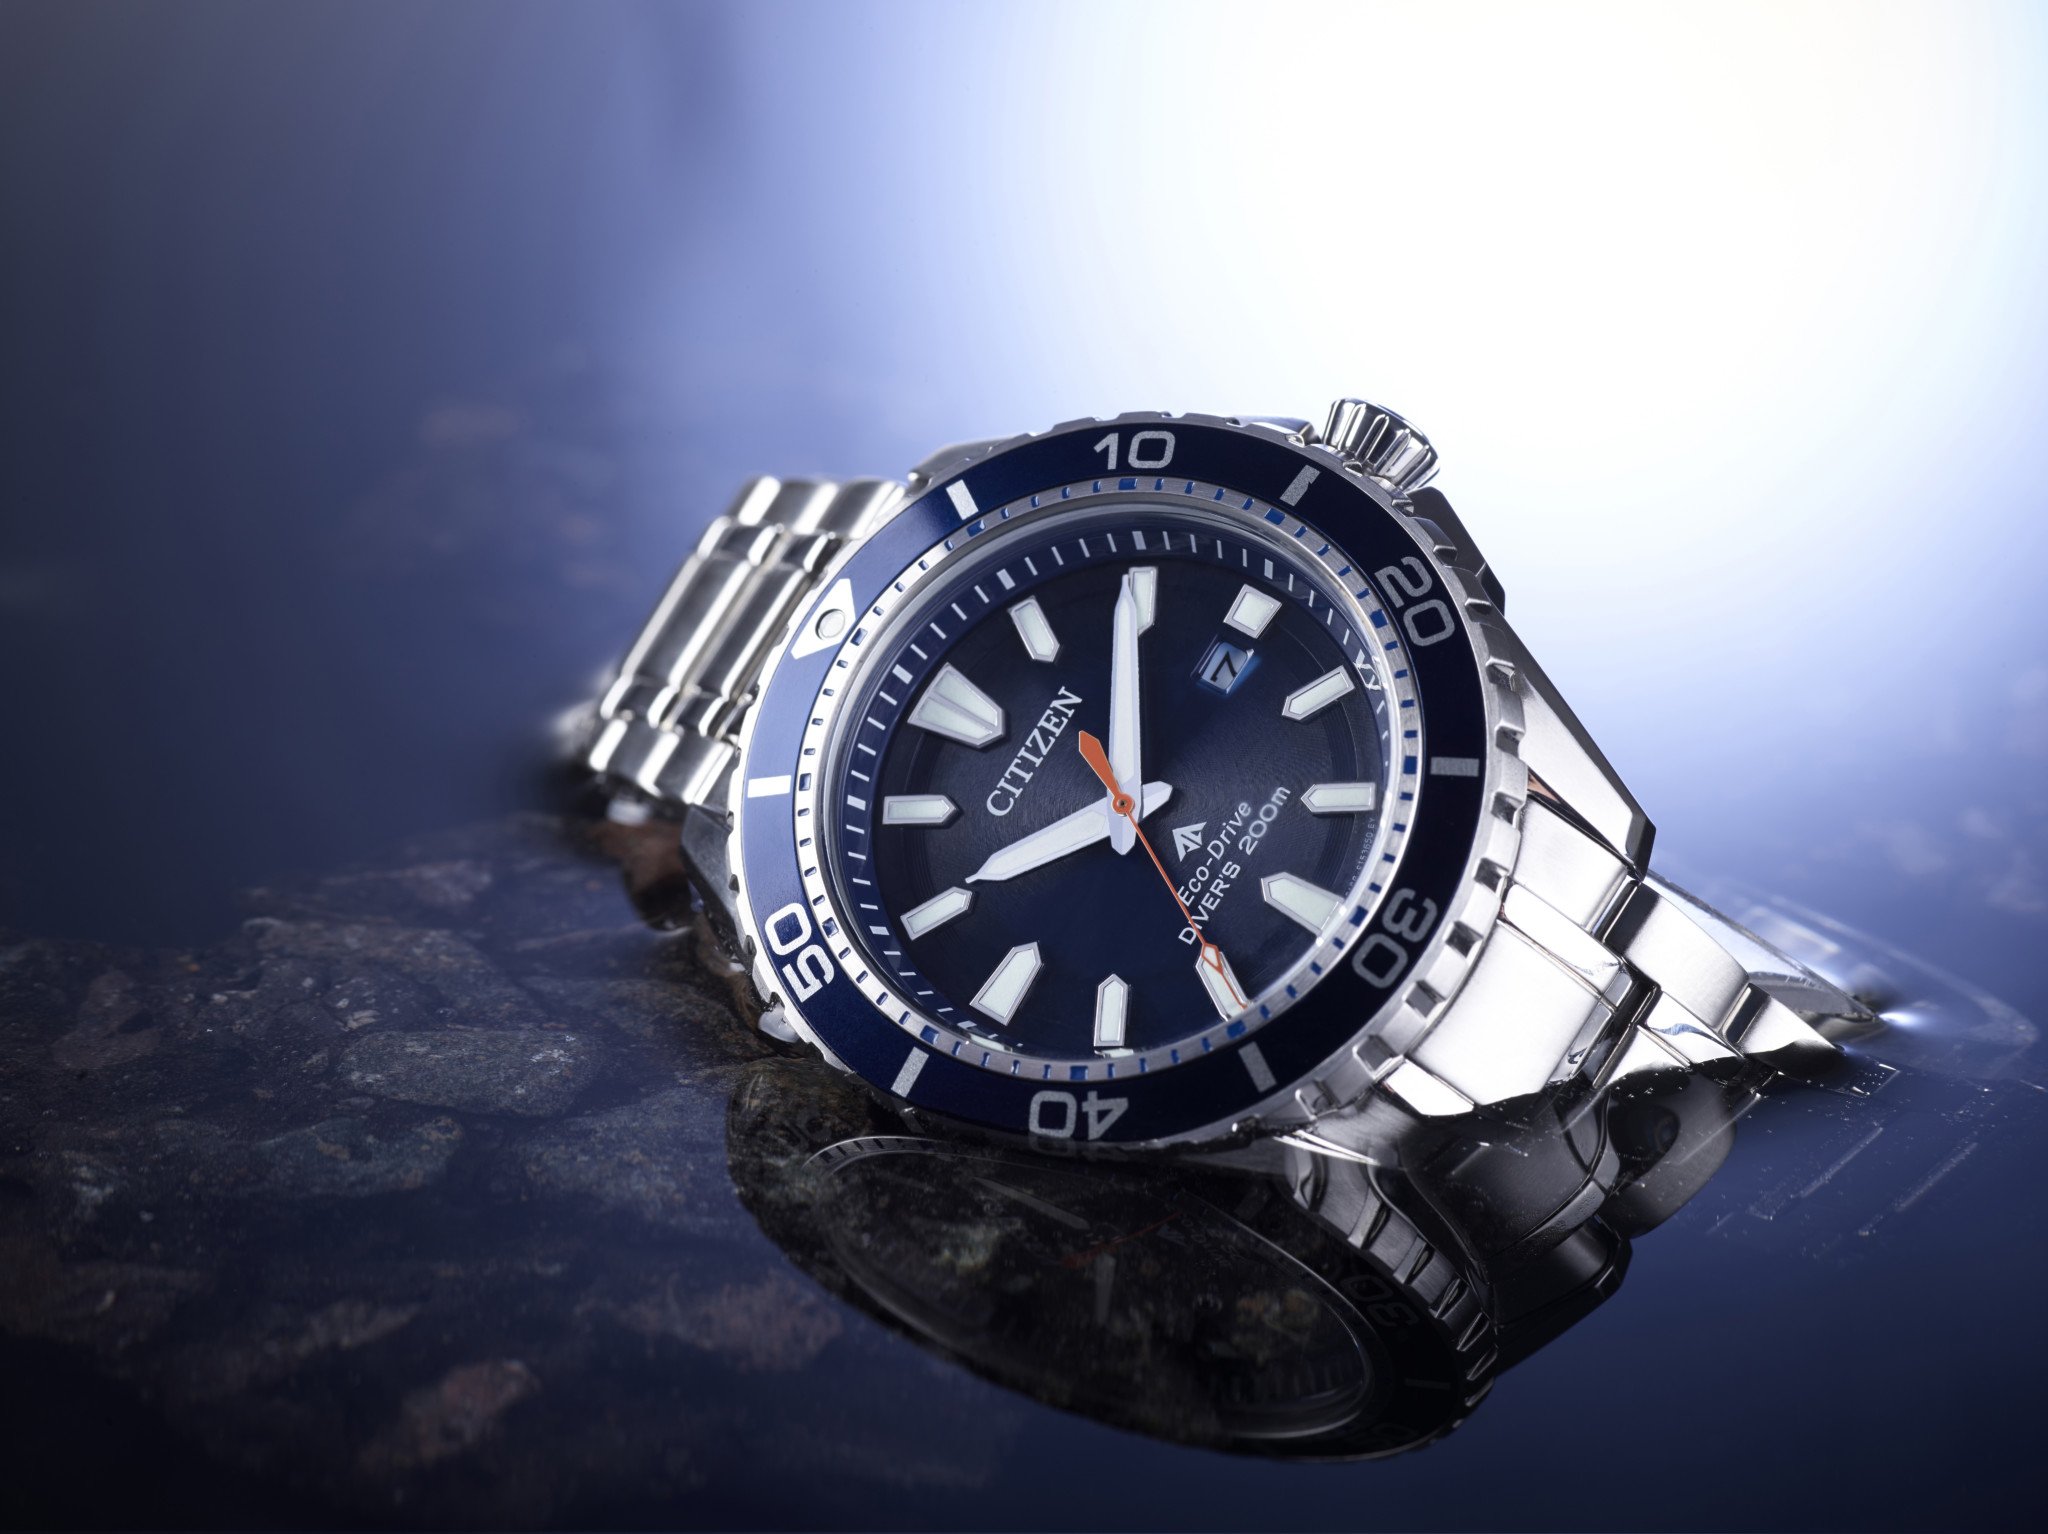 Promaster Diver -BN0191-55L Lifestyle